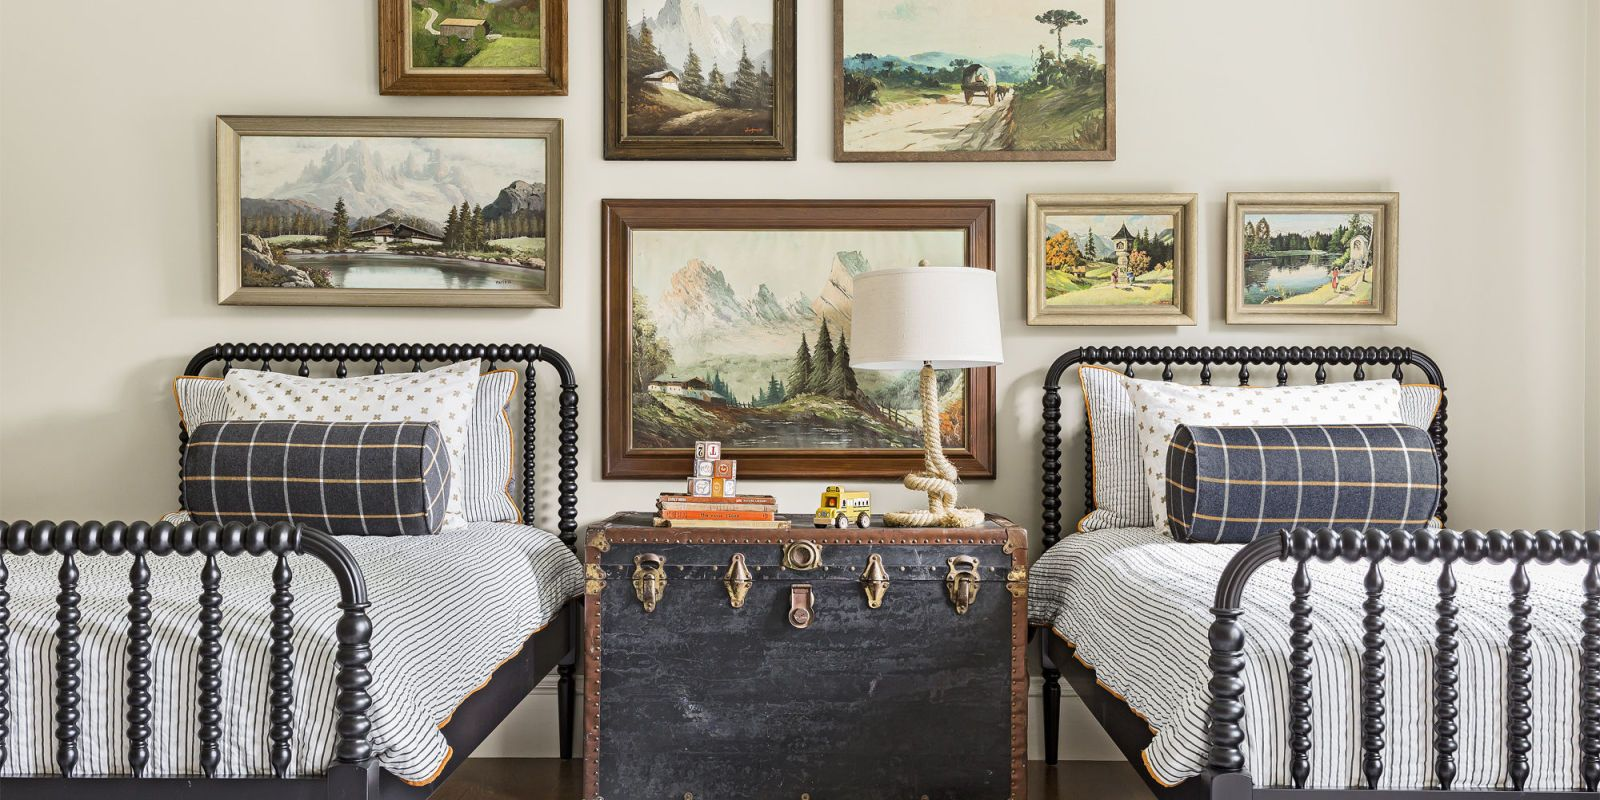 Attirant Get Inspired With Dozens Of Beautiful Bedroom Decorating Ideas.